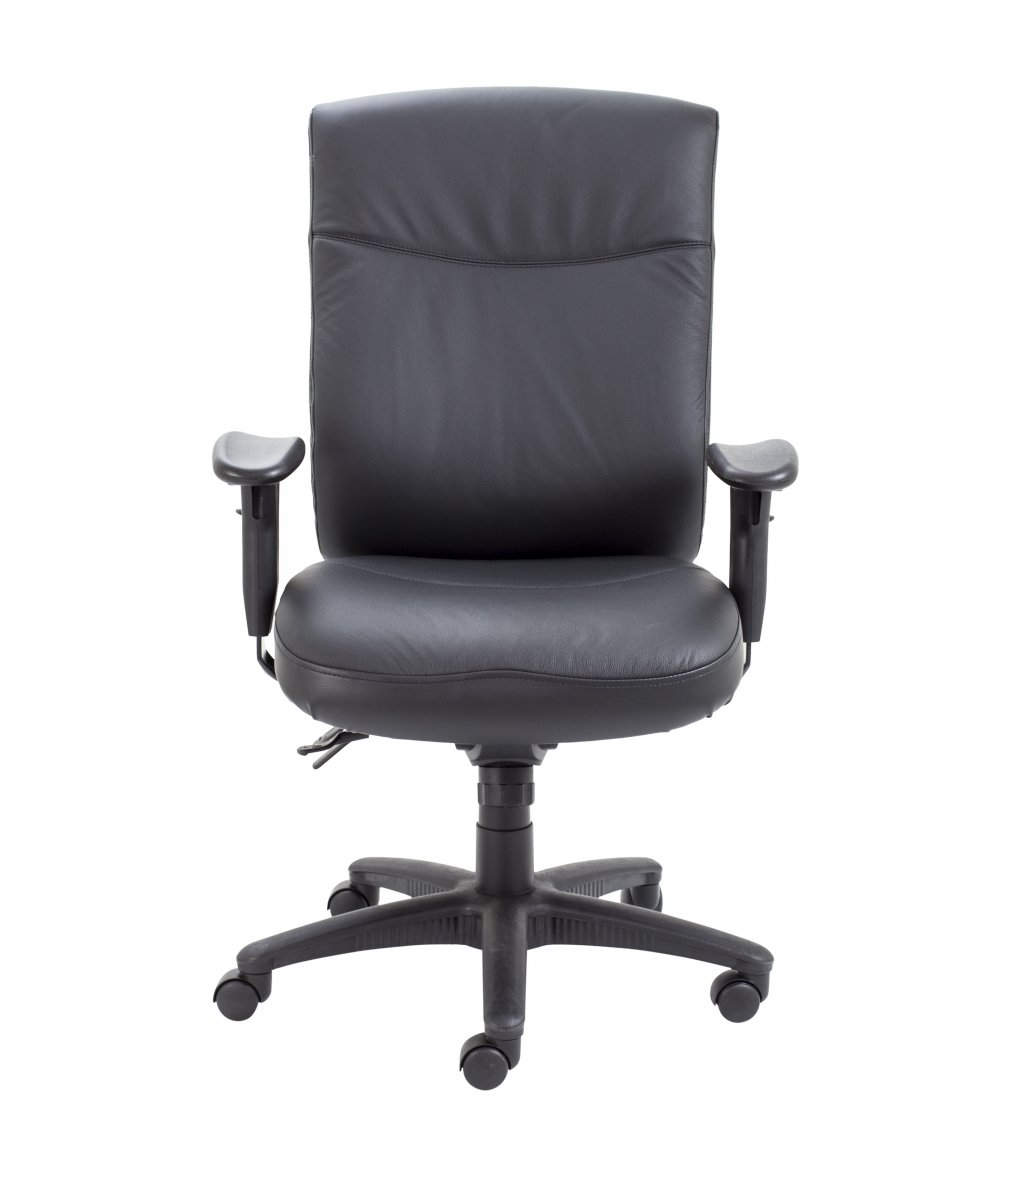 Marathon Leather High Back Heavy Duty Chair - Black